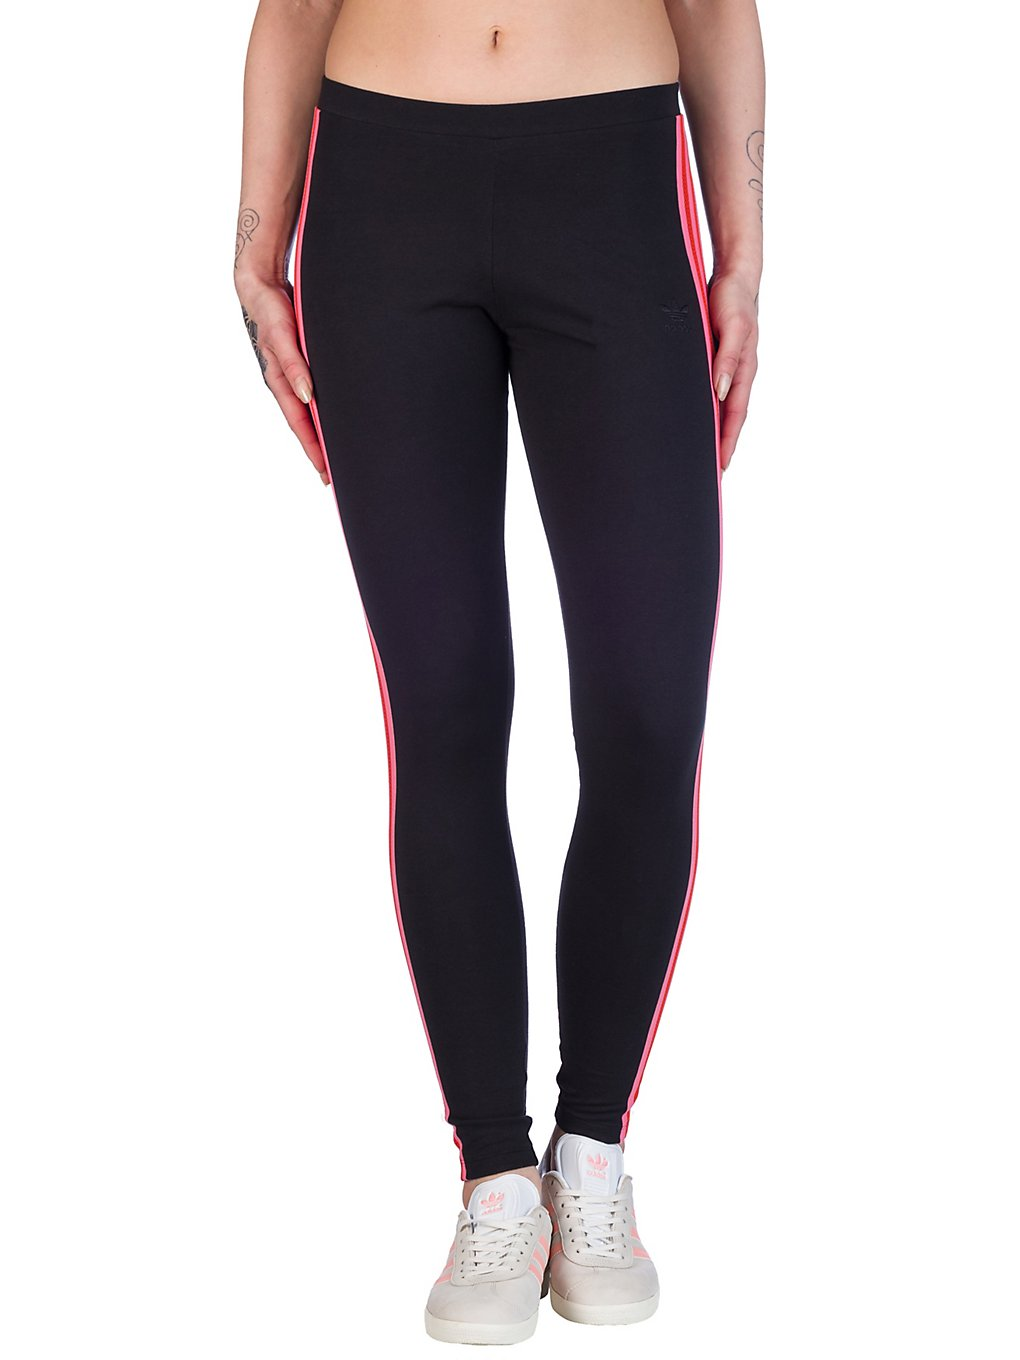 adidas Originals Clrdo Mesh Legging Pants